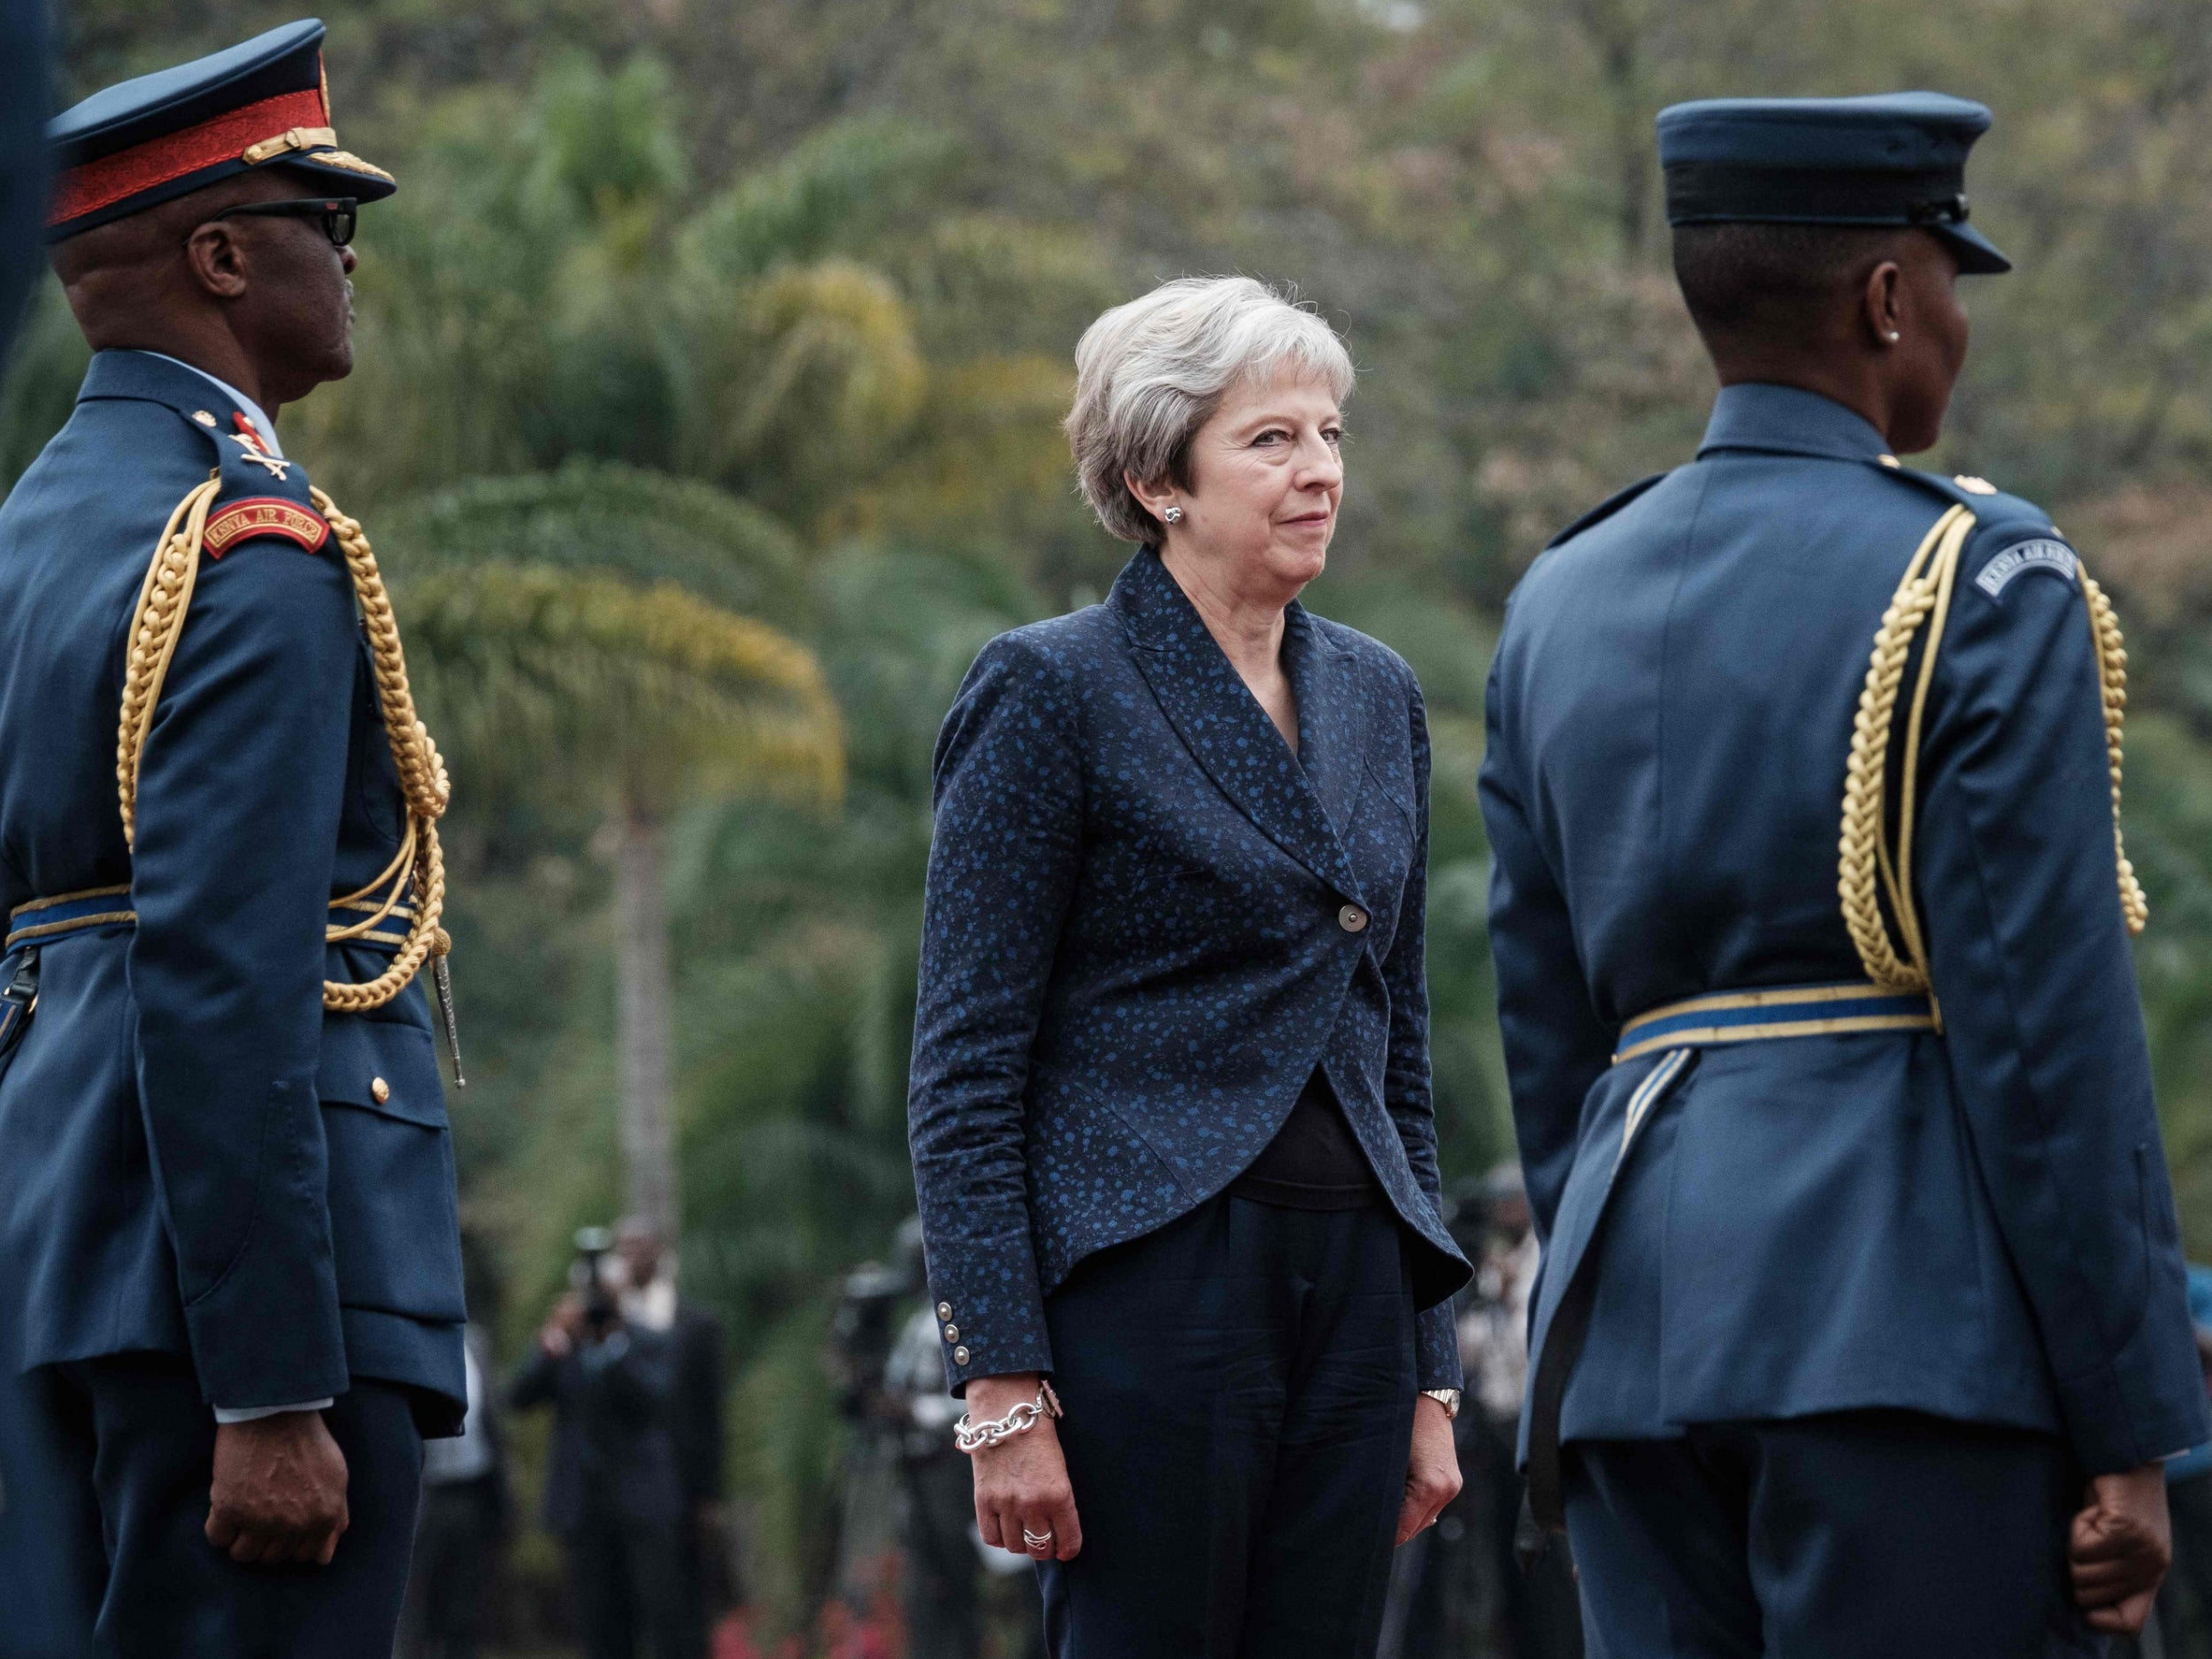 UK to train Nigerian army counterterror squads to fight Boko Haram